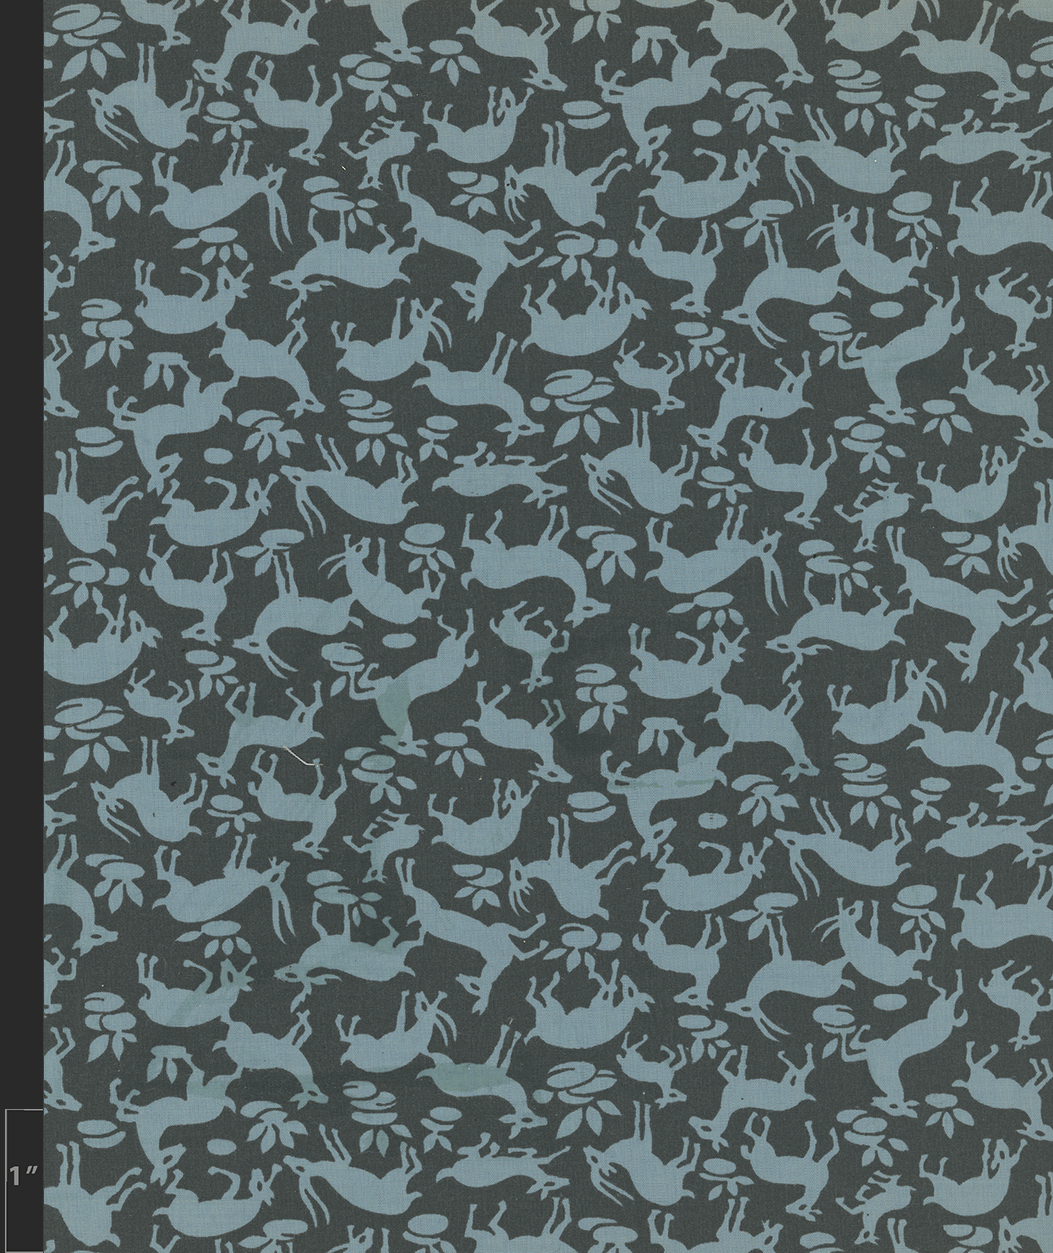 Marielle Bancou Segal conversational printed textile design for The Villager 1960s full 2 Drexel Digital Museum 10F